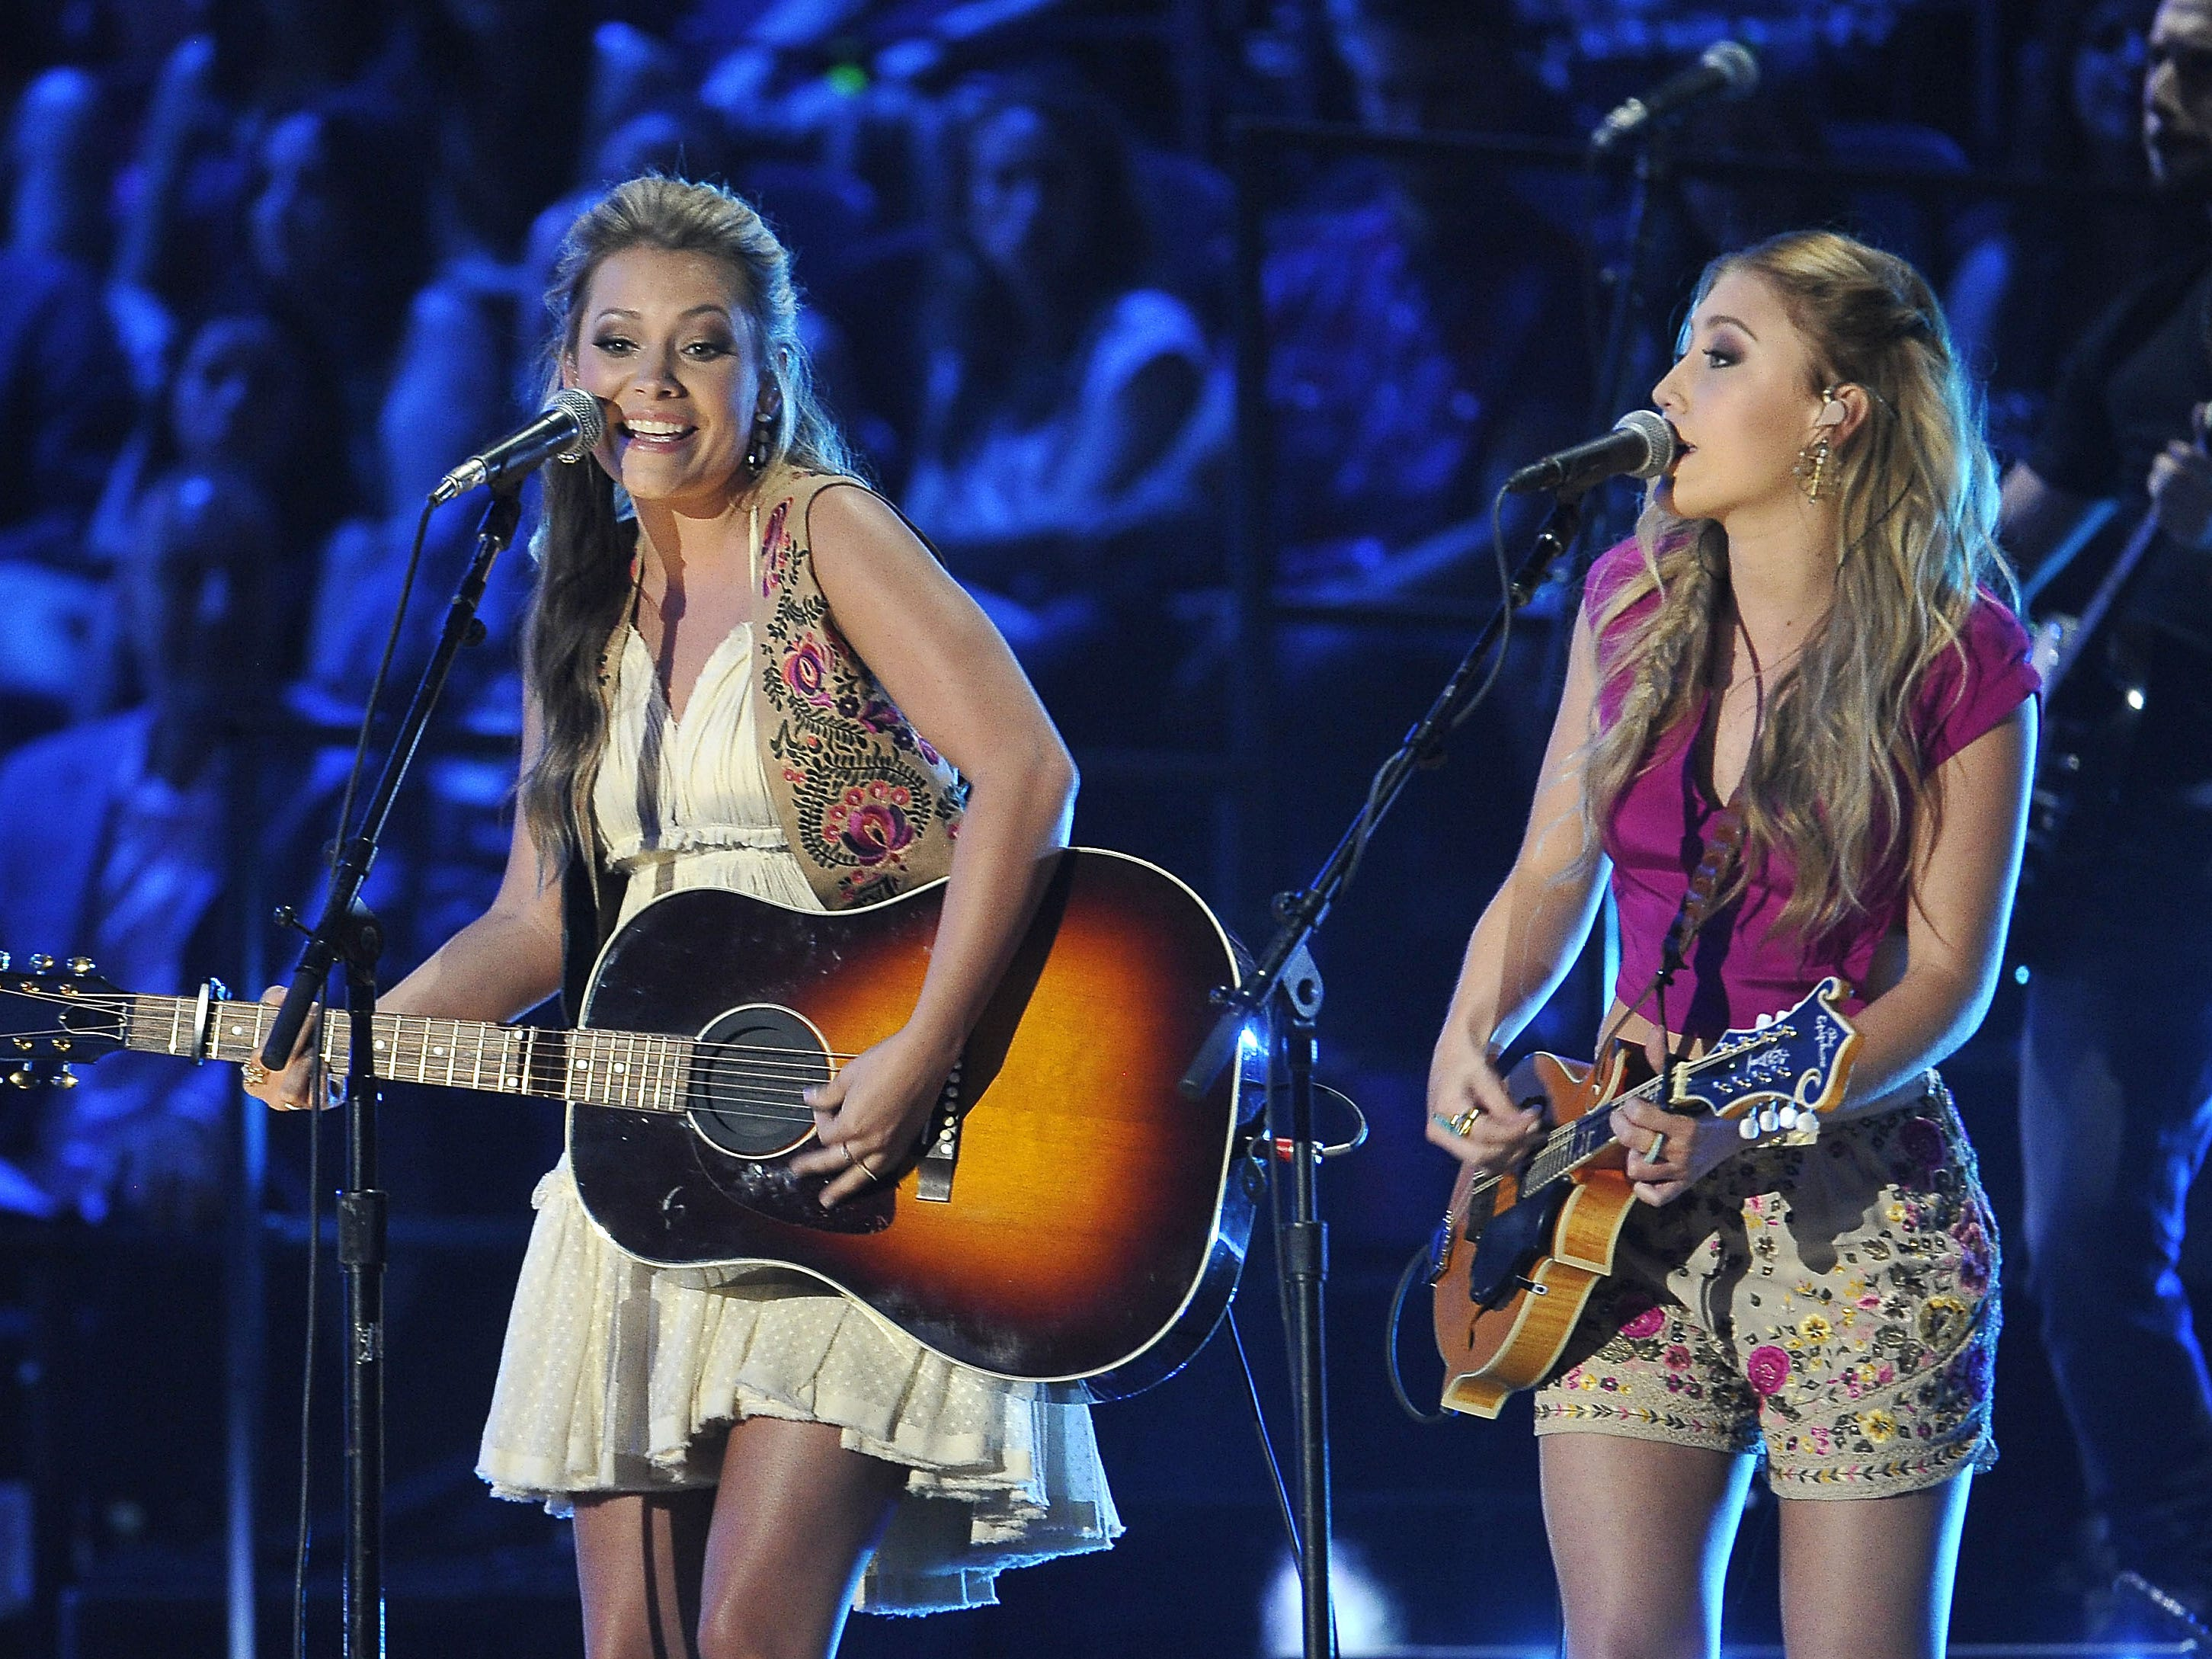 Maddie & Tae are scheduled to play the Chevy Riverfront Stage at CMA Fest 2019.